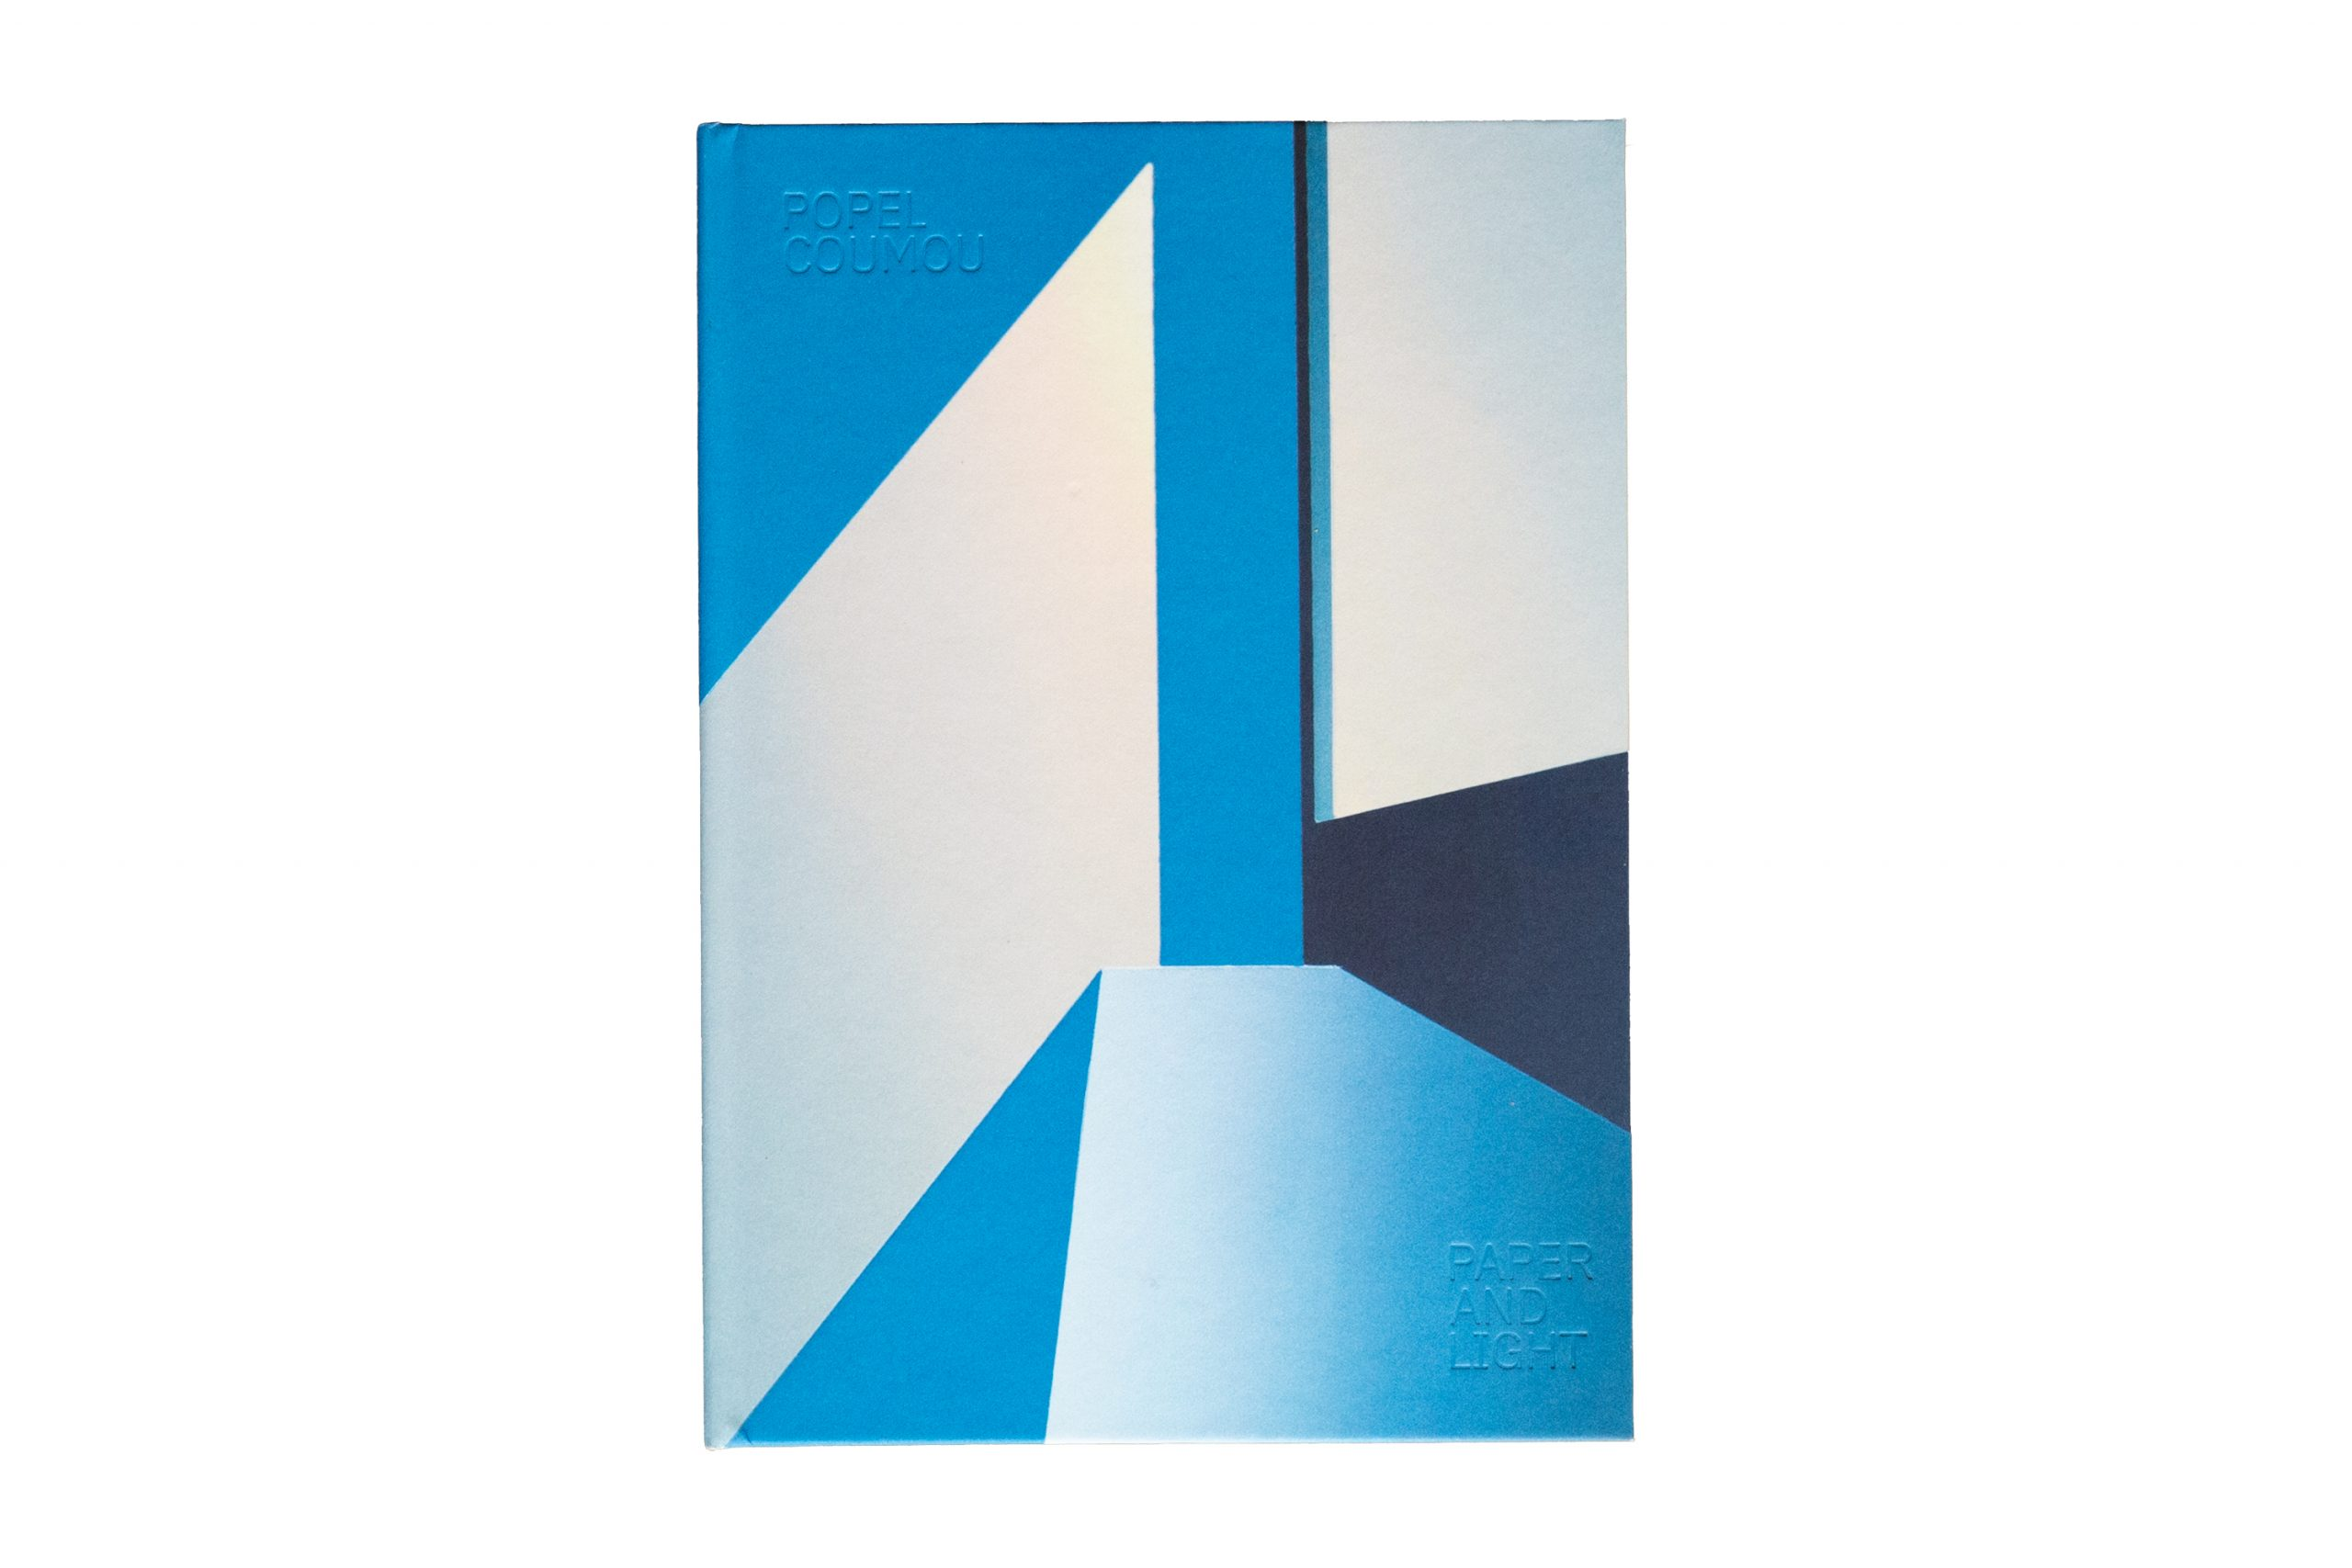 Cover Paper and Light, Popel Coumou